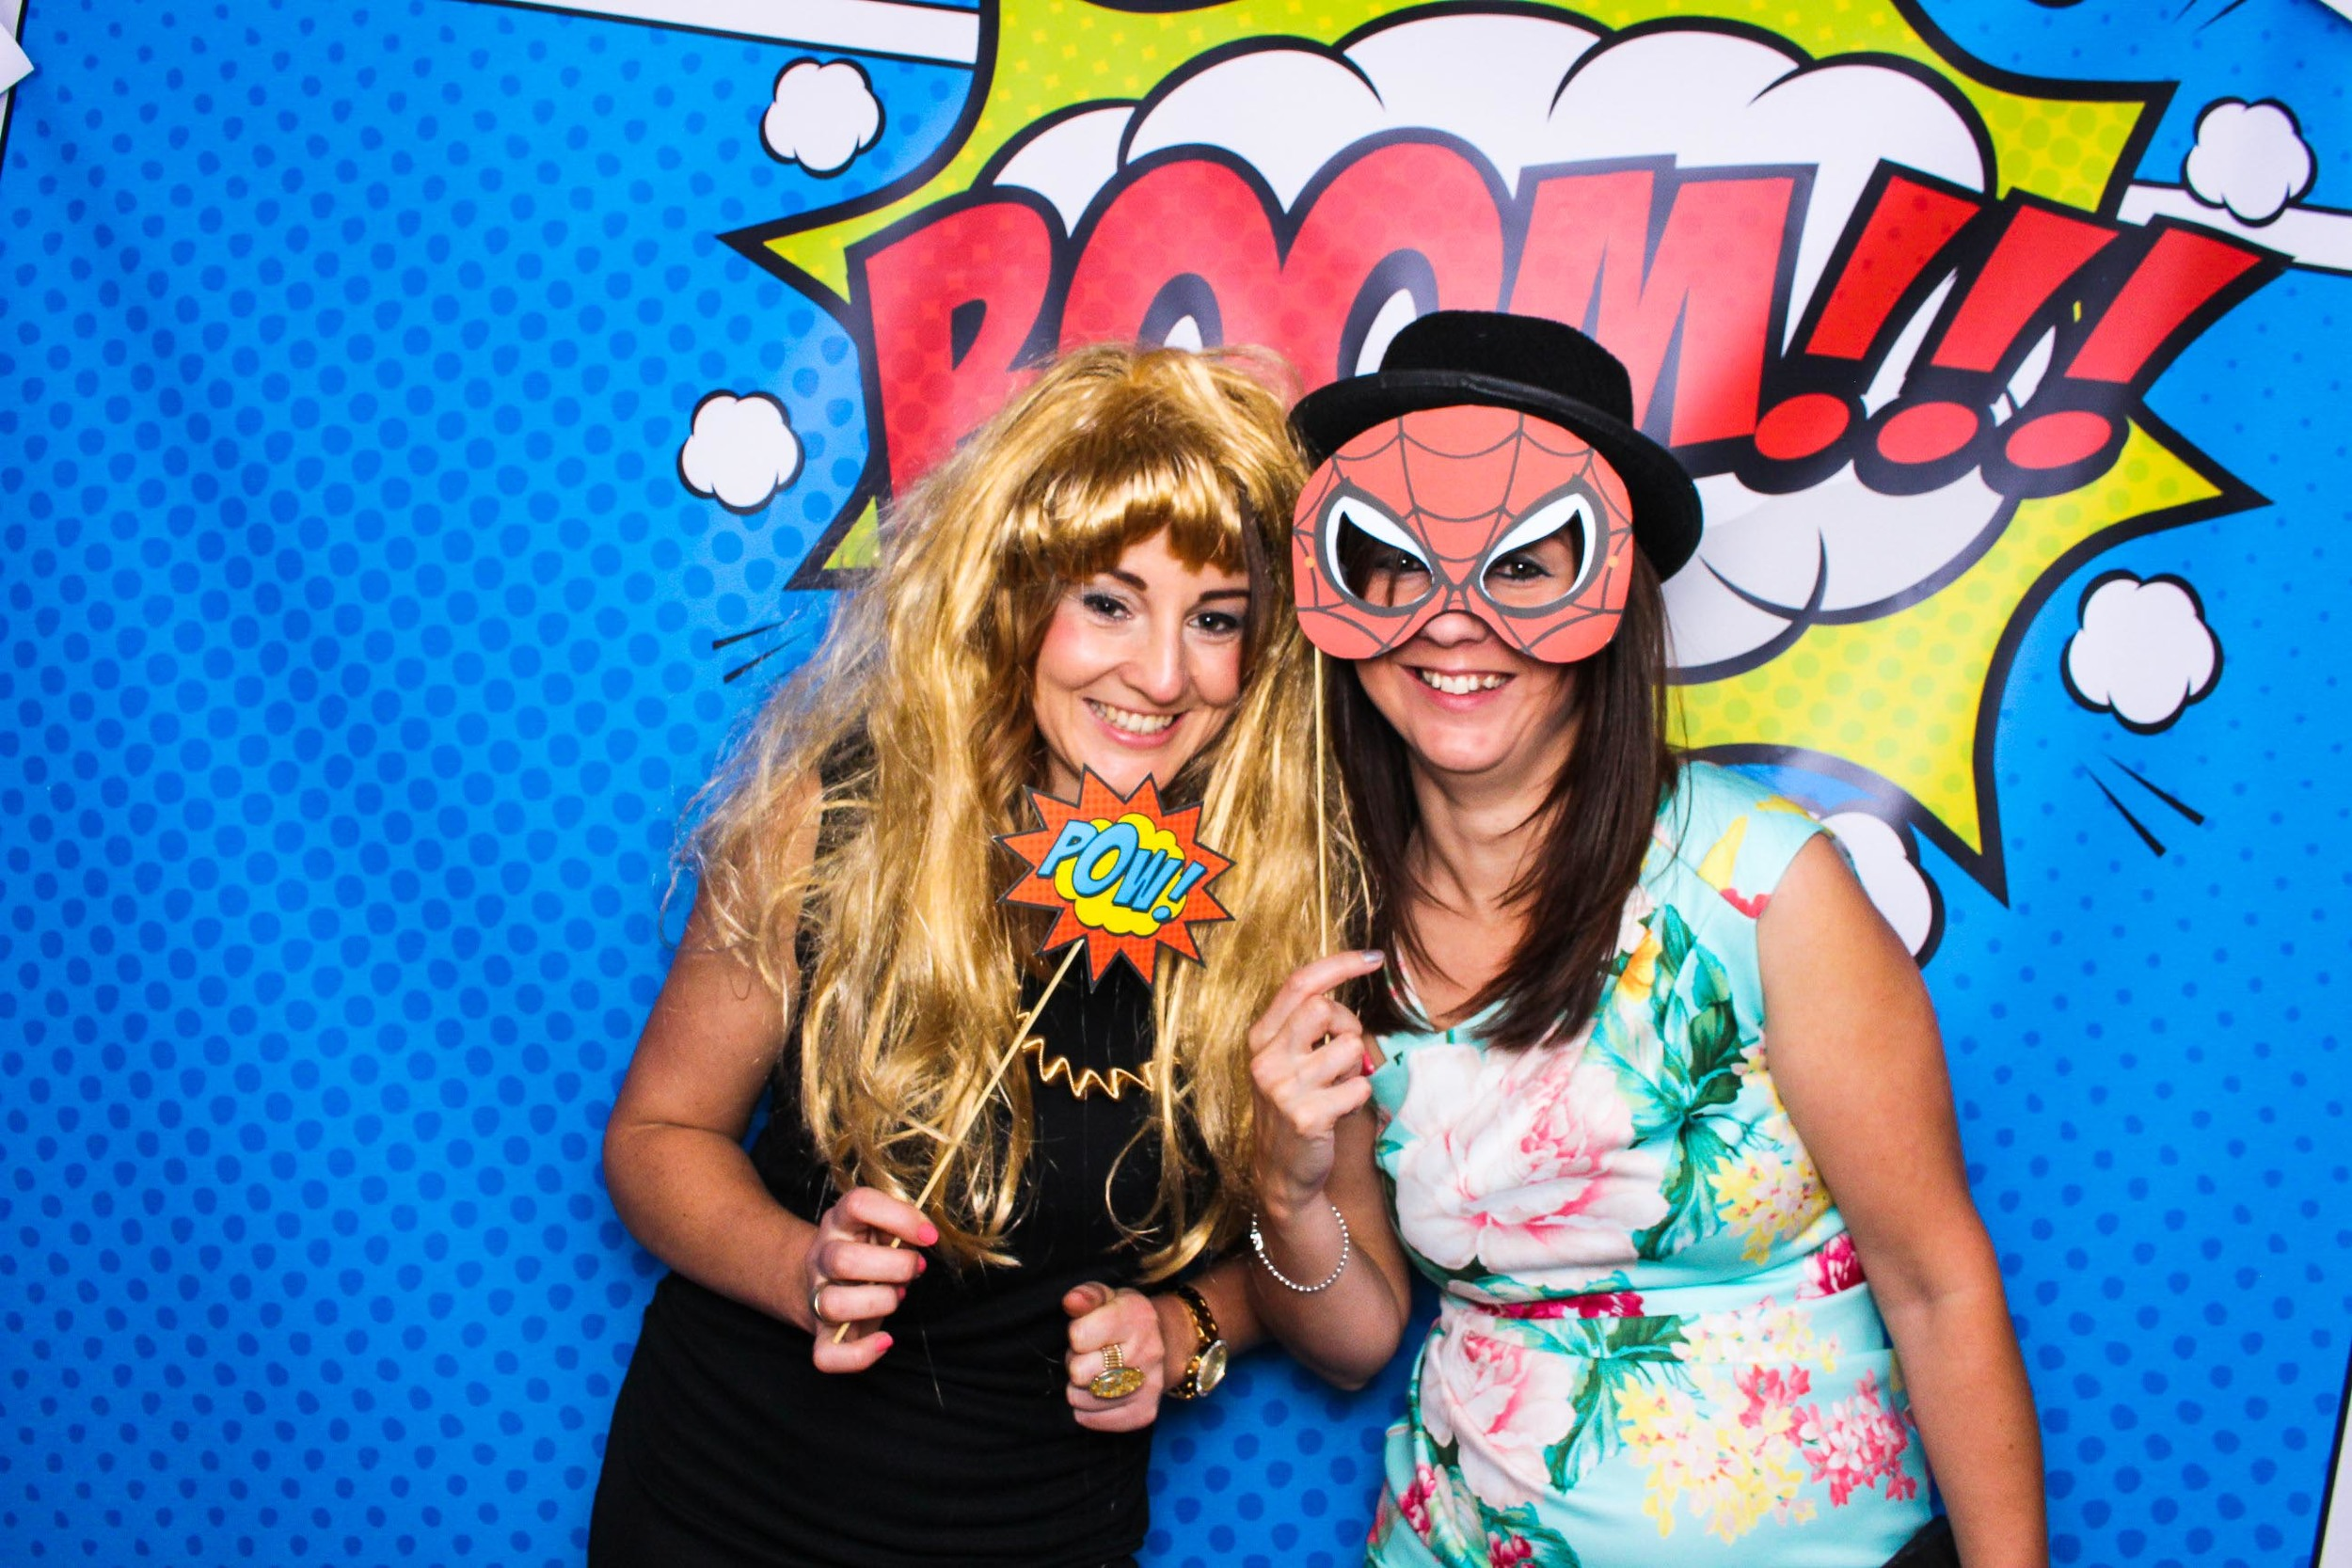 Fotoauto Photo Booth Hire - Shop Direct-186.jpg